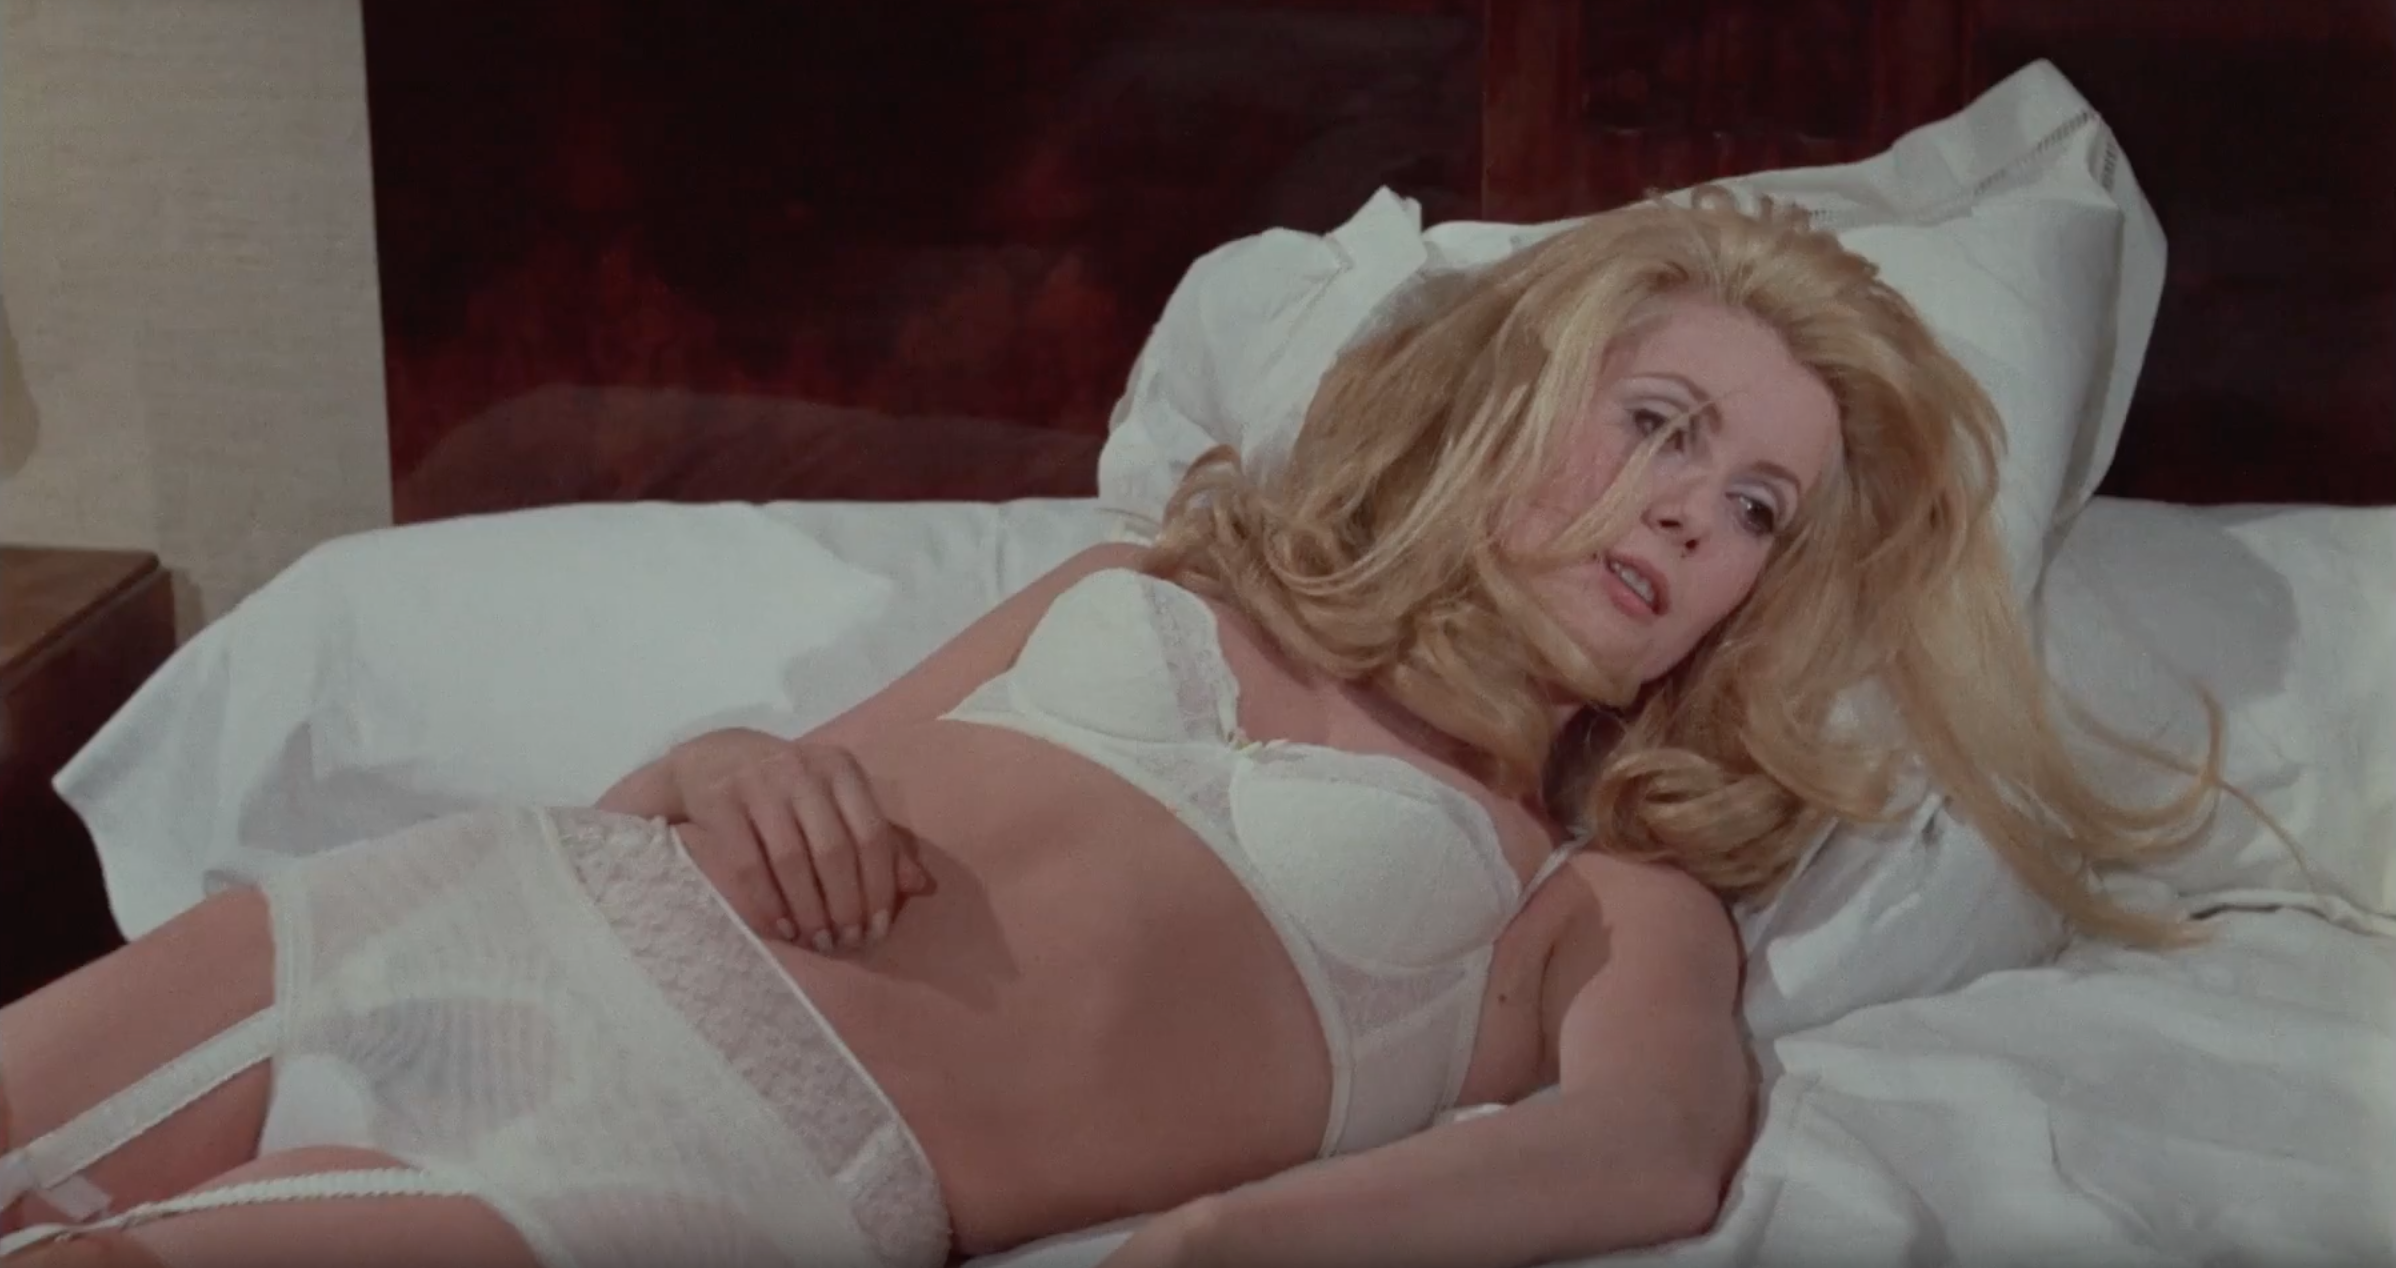 Best sexually charged movies of all time